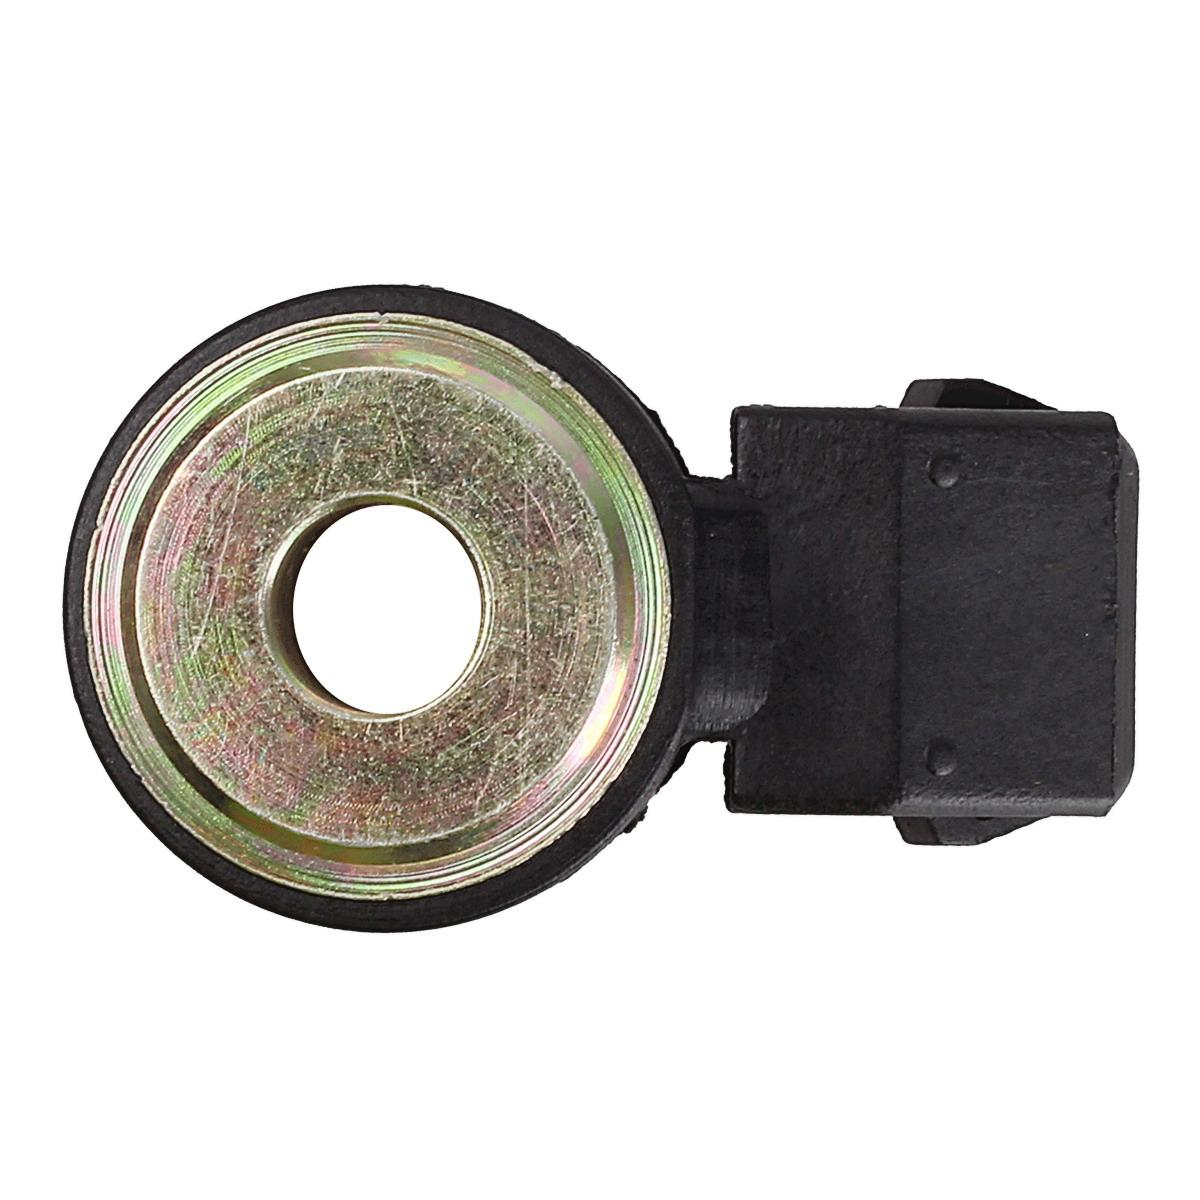 Brake Switch besides Tn Nissan Versa Hatchback Tail Light Bulbs Replacement Guide as well Graphic also L moreover Xfpmwkgxl Sl Ac Ss. on nissan xterra brake light replacement